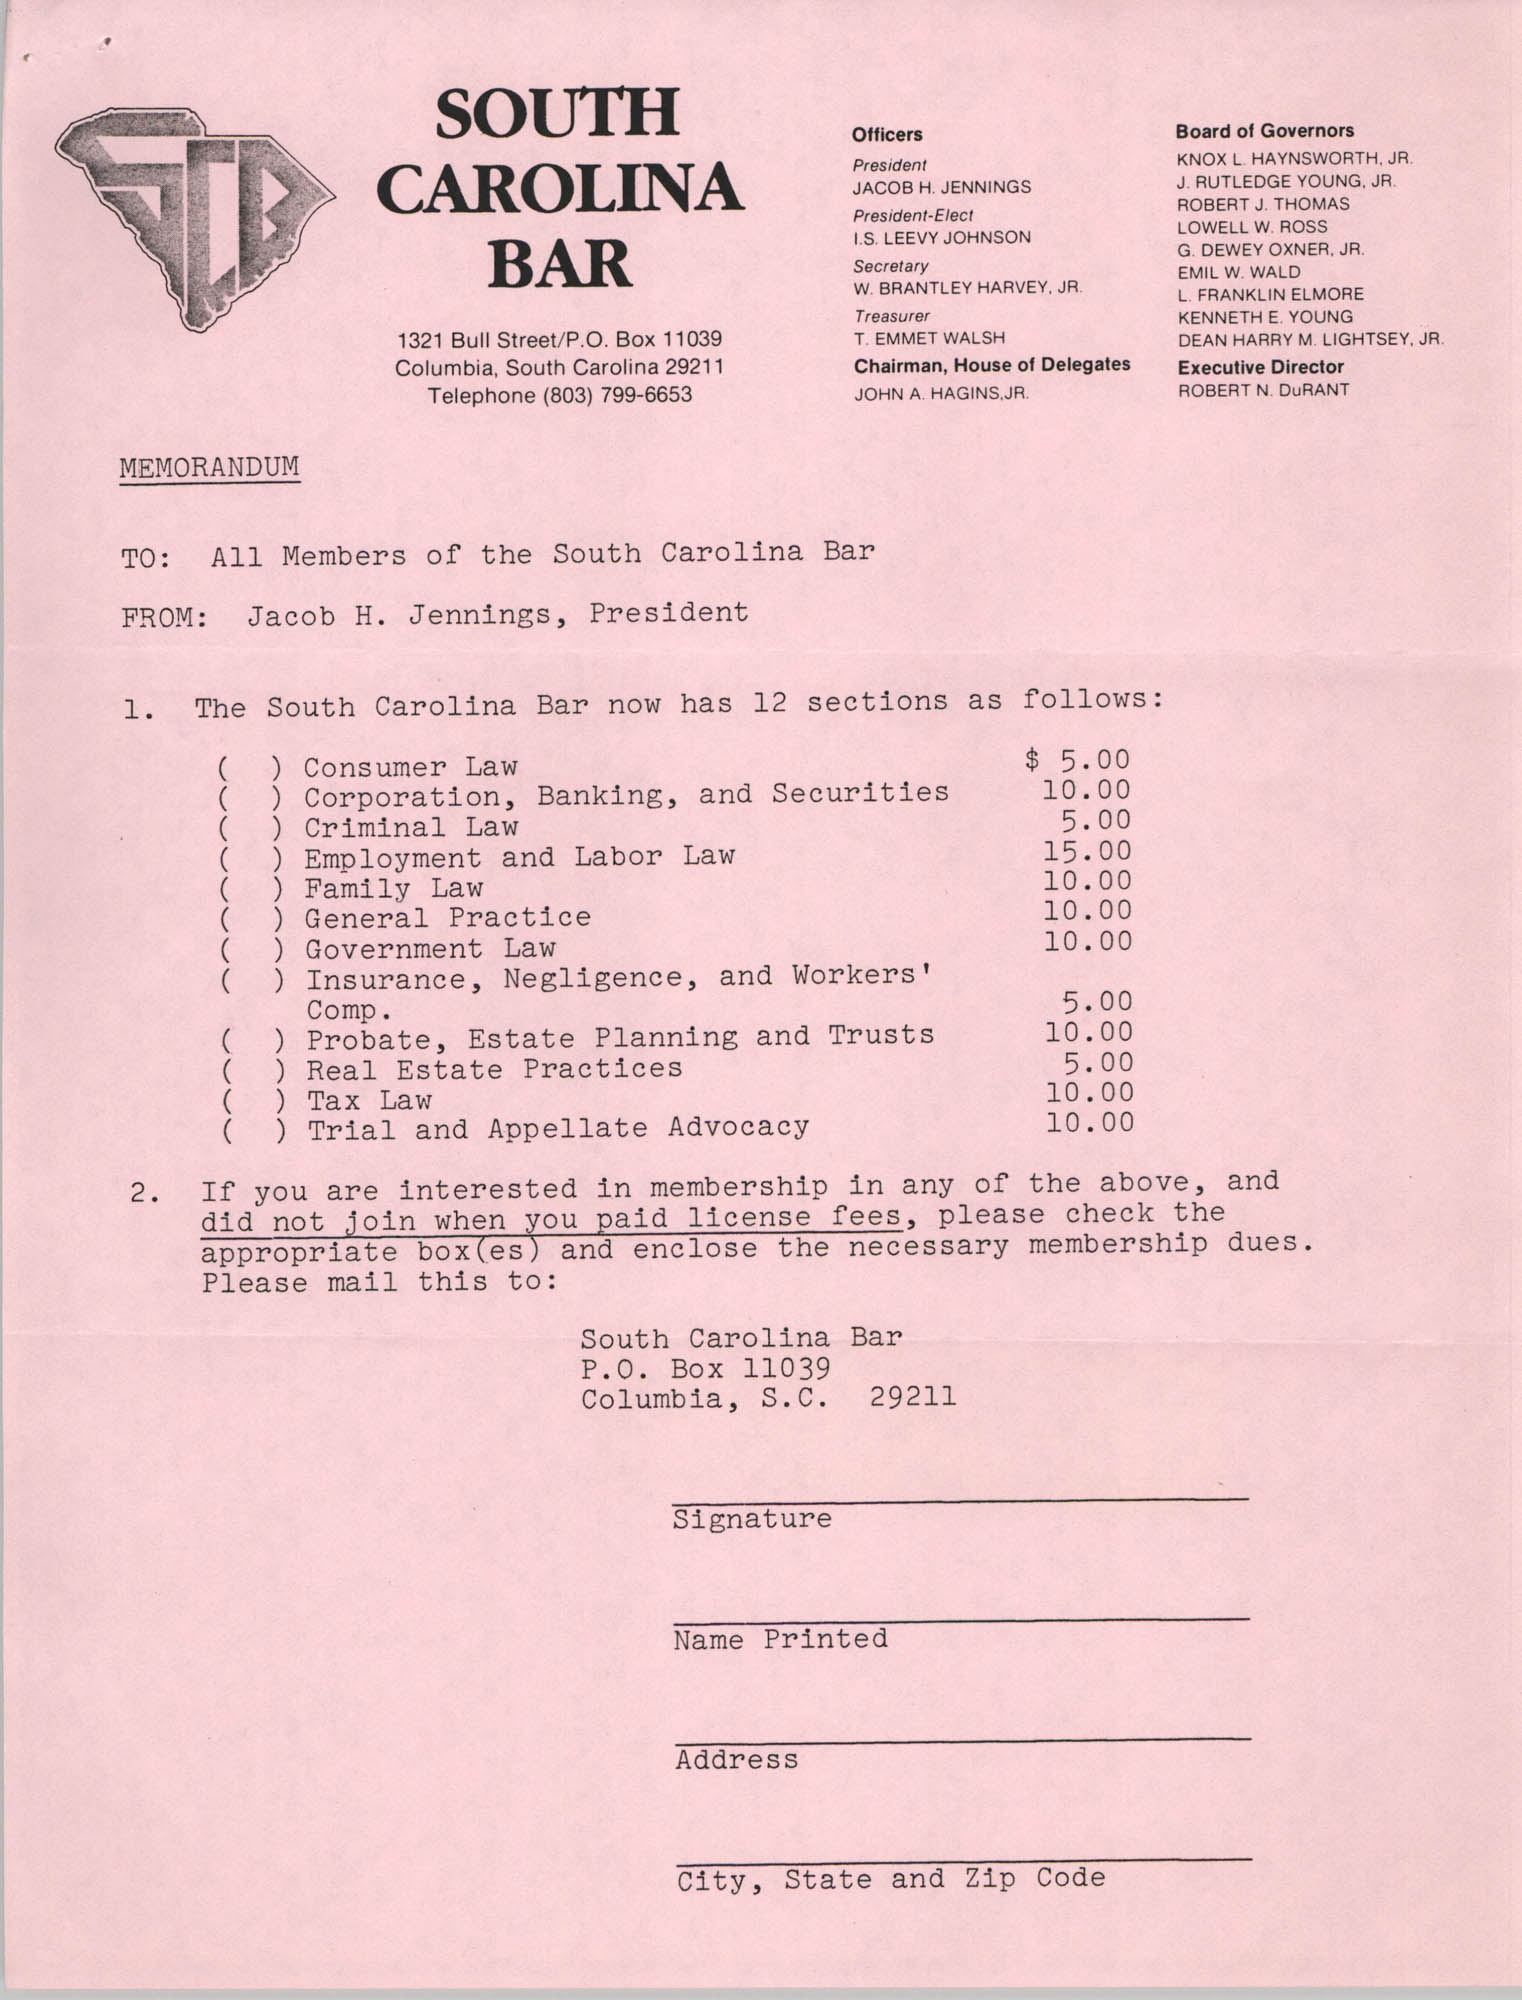 South Carolina Bar, Memorandum, Jacob H. Jennings